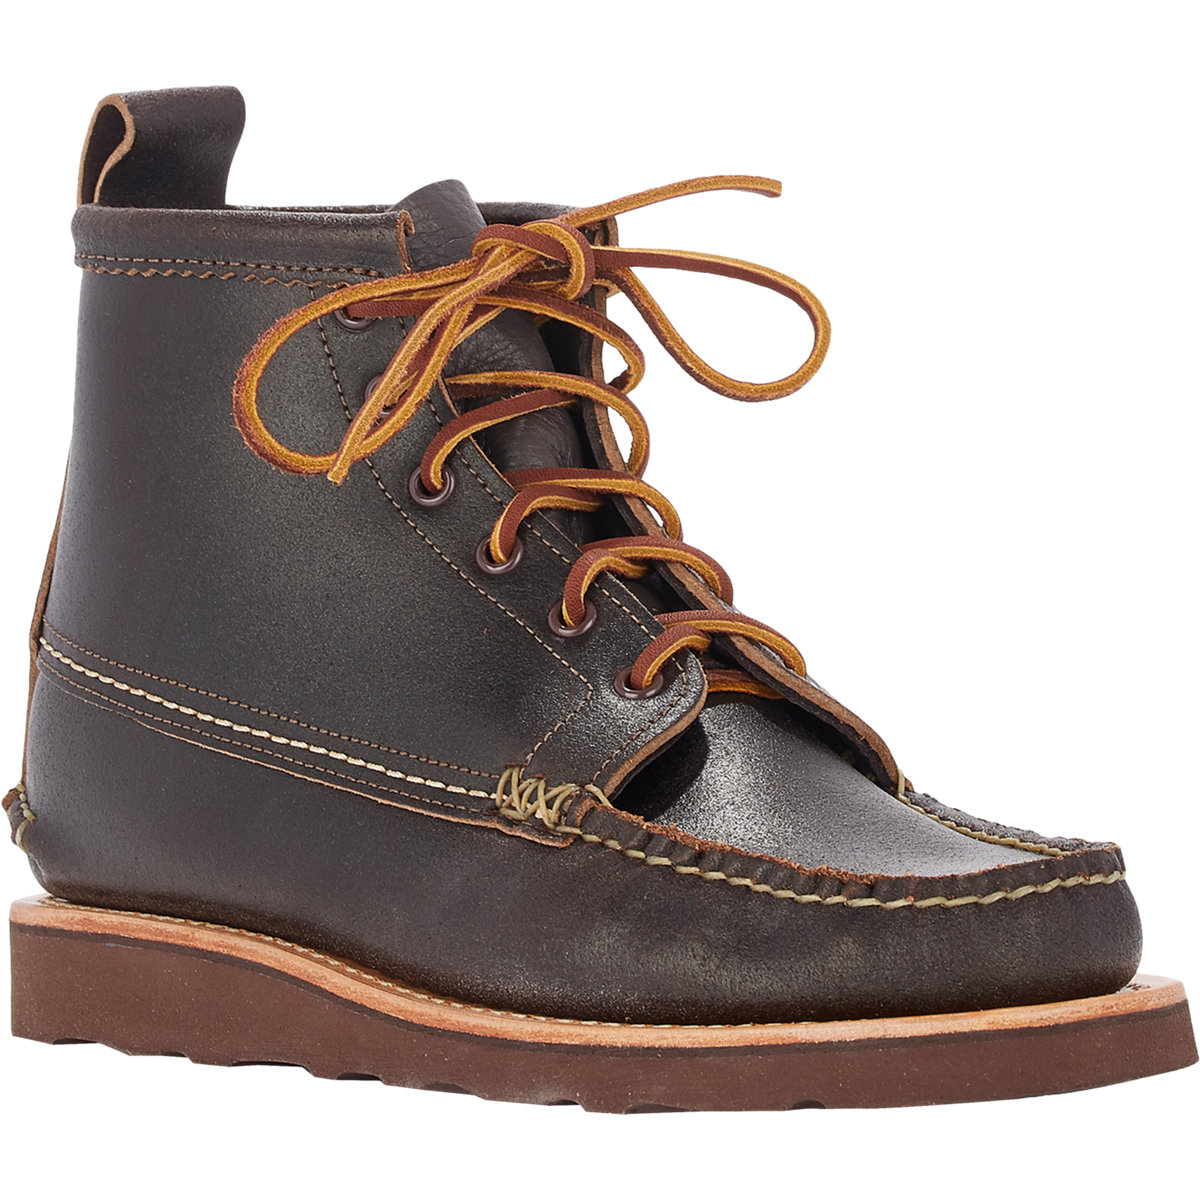 Yuketen Maine Guide Boots In Brown For Men Lyst